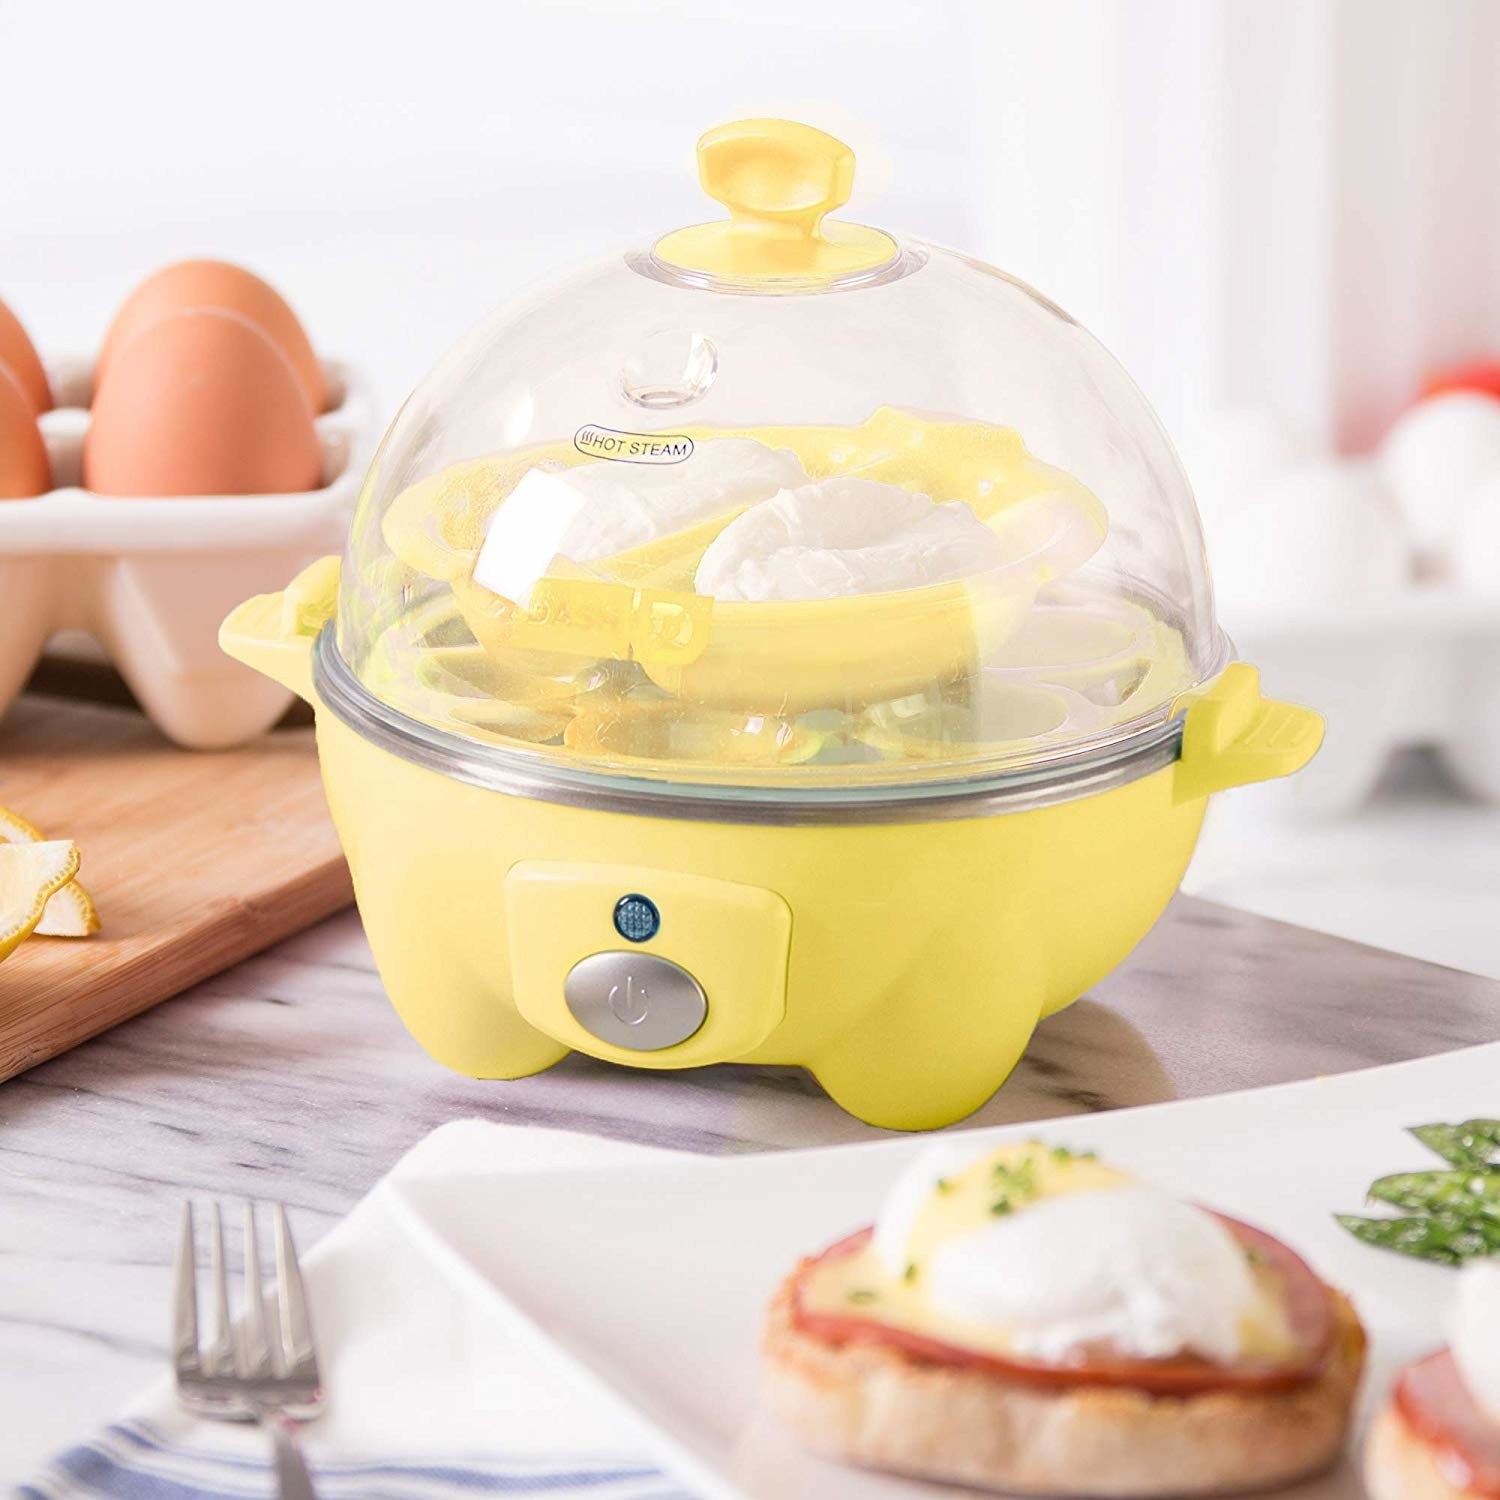 the yellow egg cooker with it poaching eggs inside